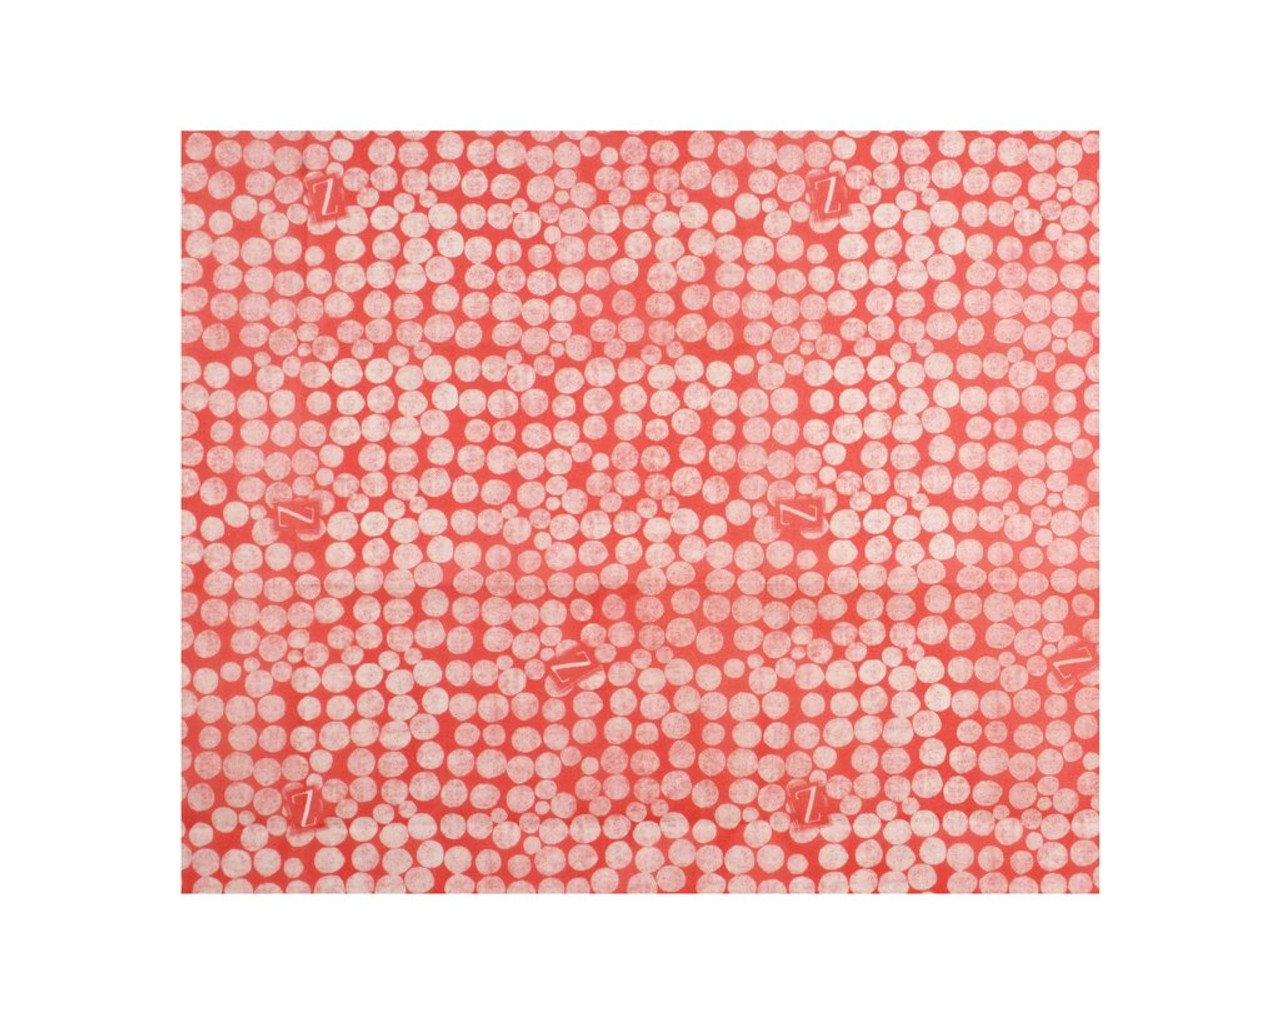 ZWraps Reusable Beeswax Food Wrap - Large - Connect the Dots (ZW LDOT)